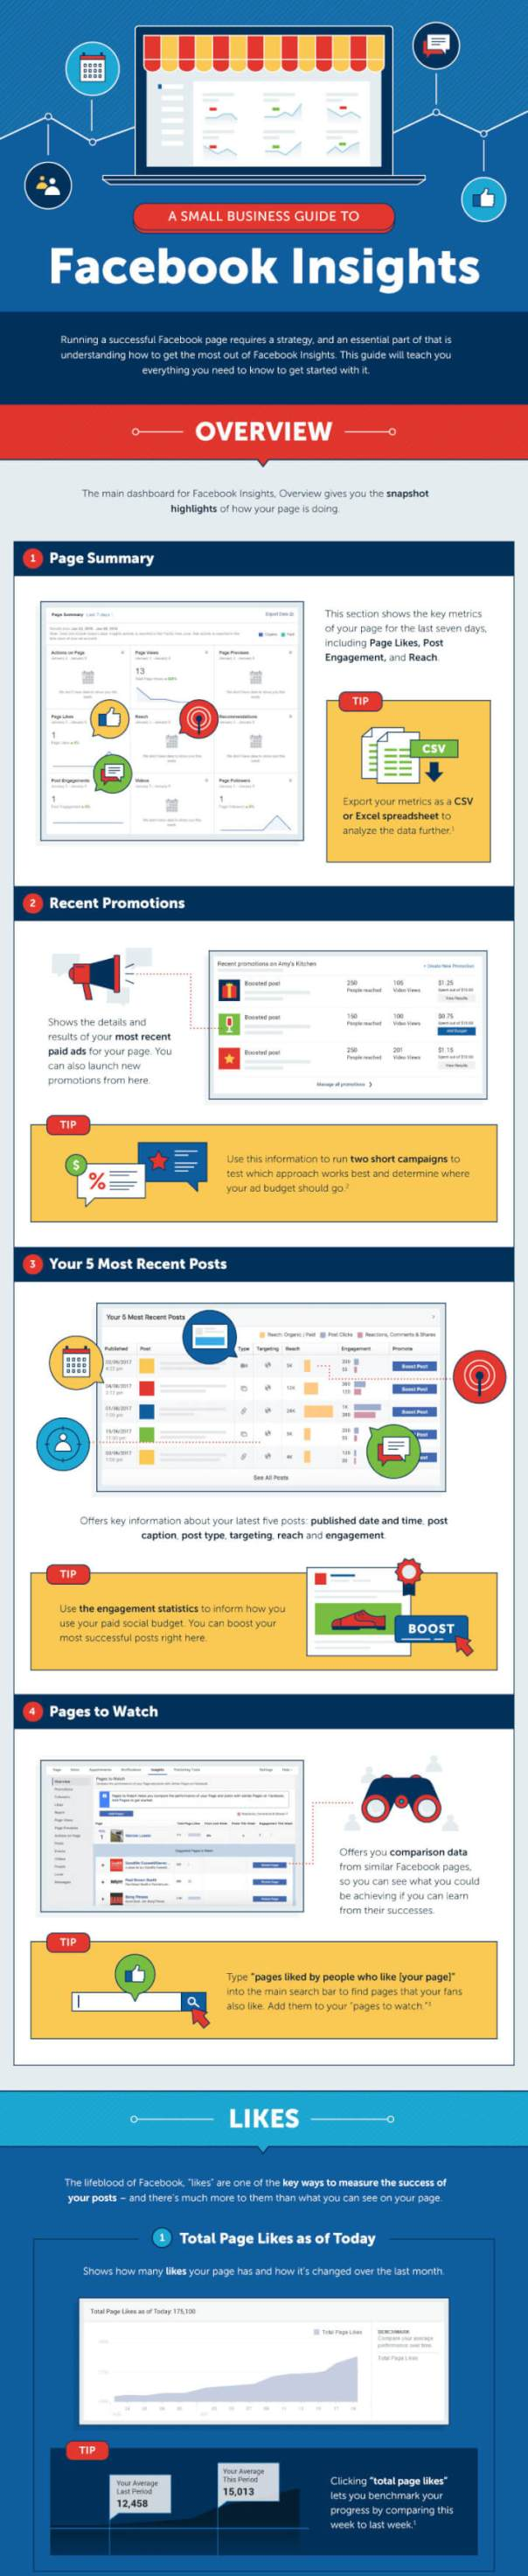 Facebook-Insights-Infographic_01